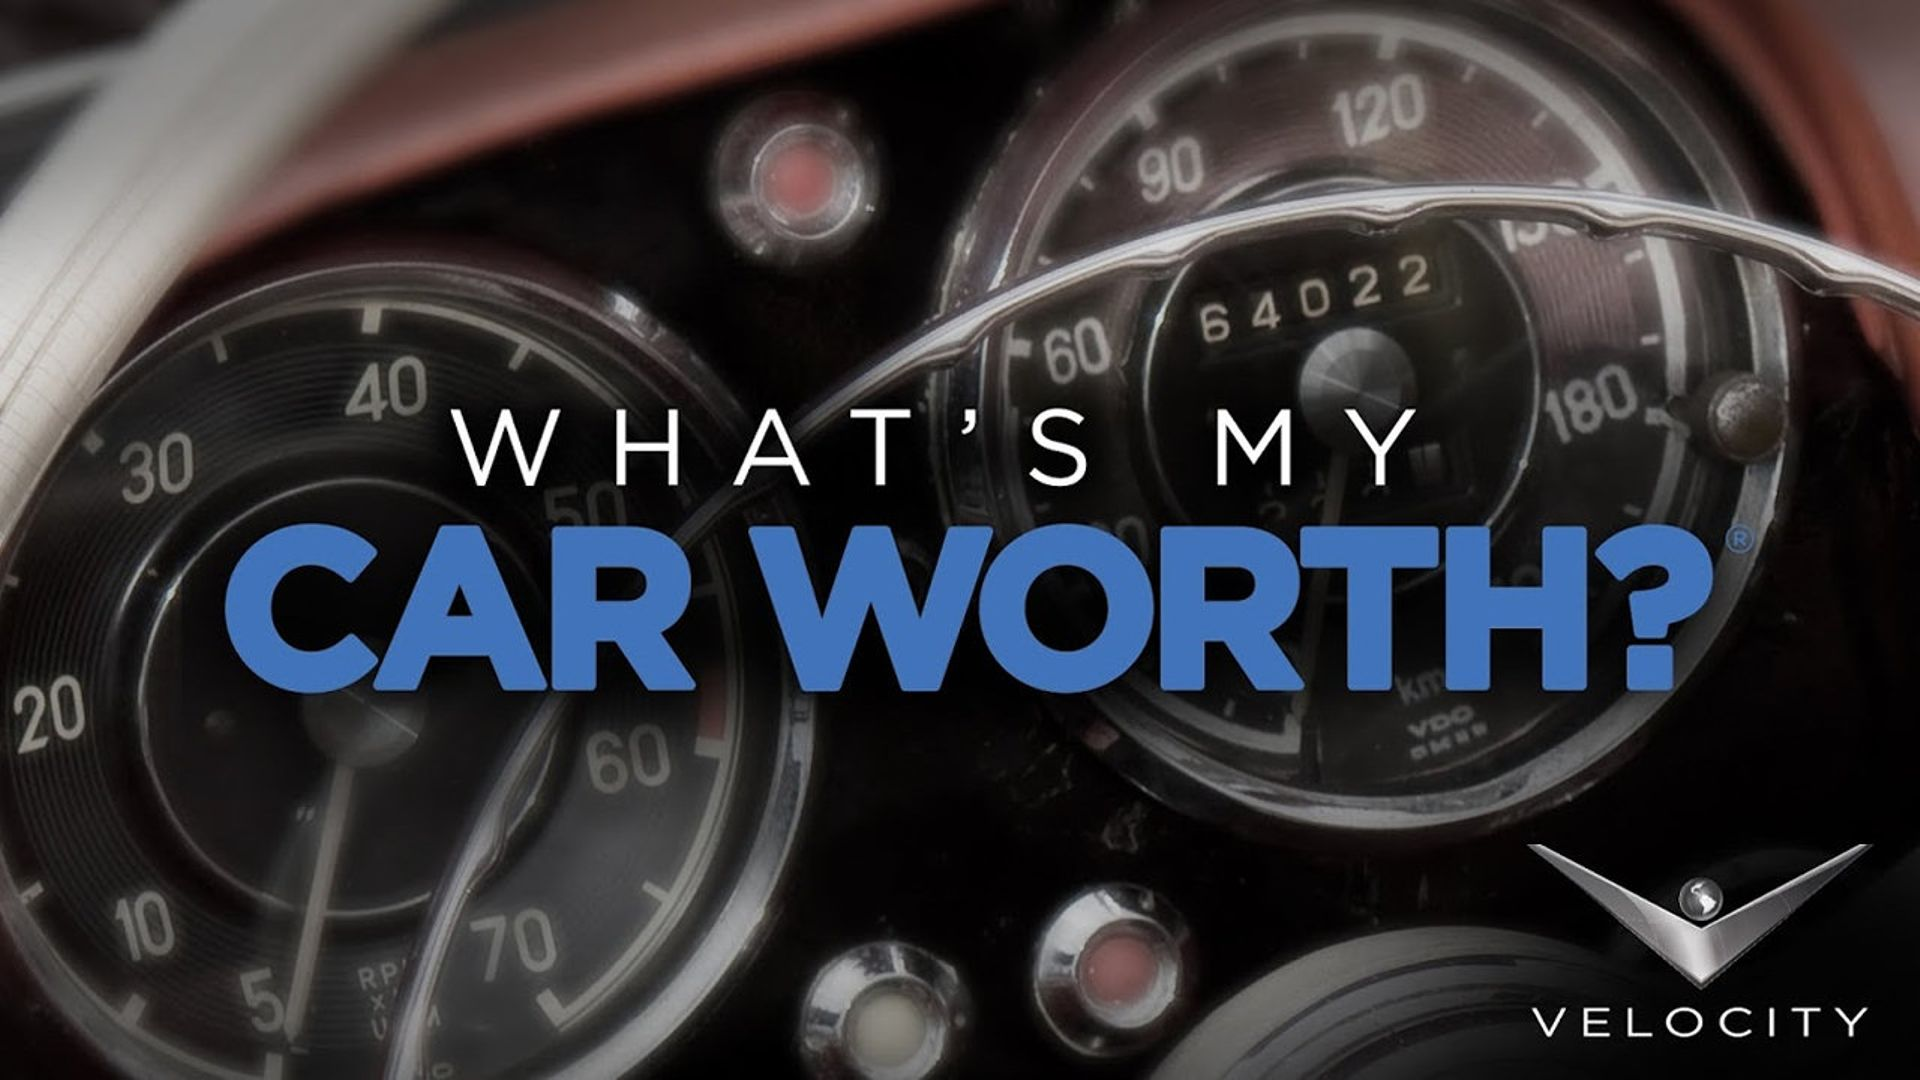 Whats My Car Worth Season Where To Watch Every Episode Reelgood - What's my car worth show